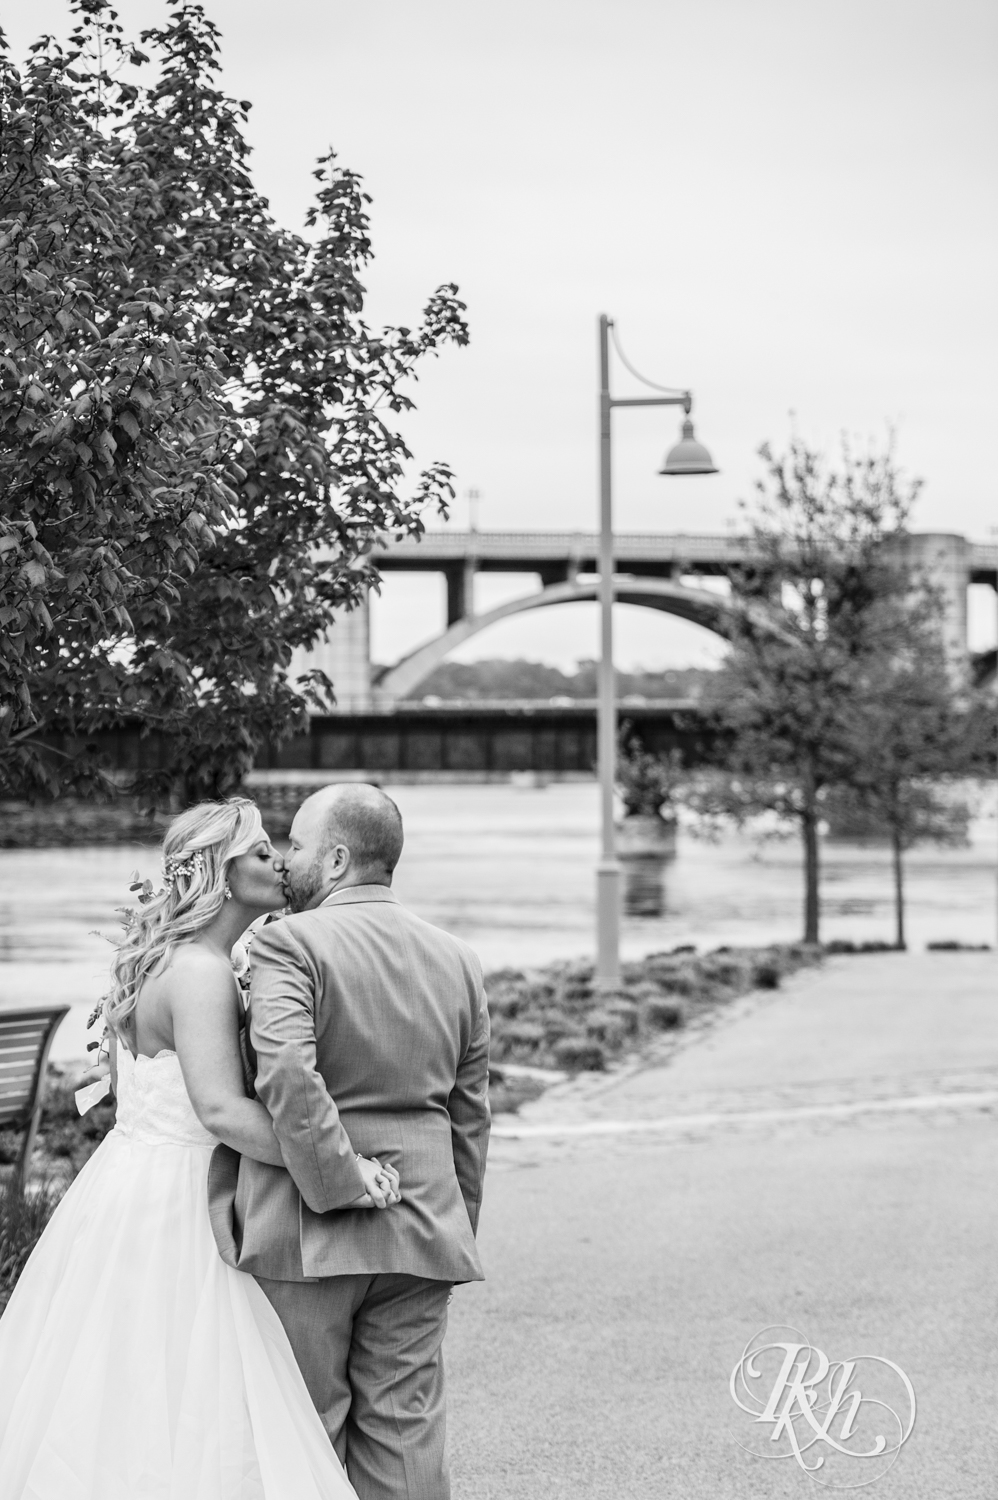 Shannon and Brian - Minnesota Wedding Photography - Raspberry Island - Minnesota Boat Club - RKH Images - Blog  (36 of 60).jpg